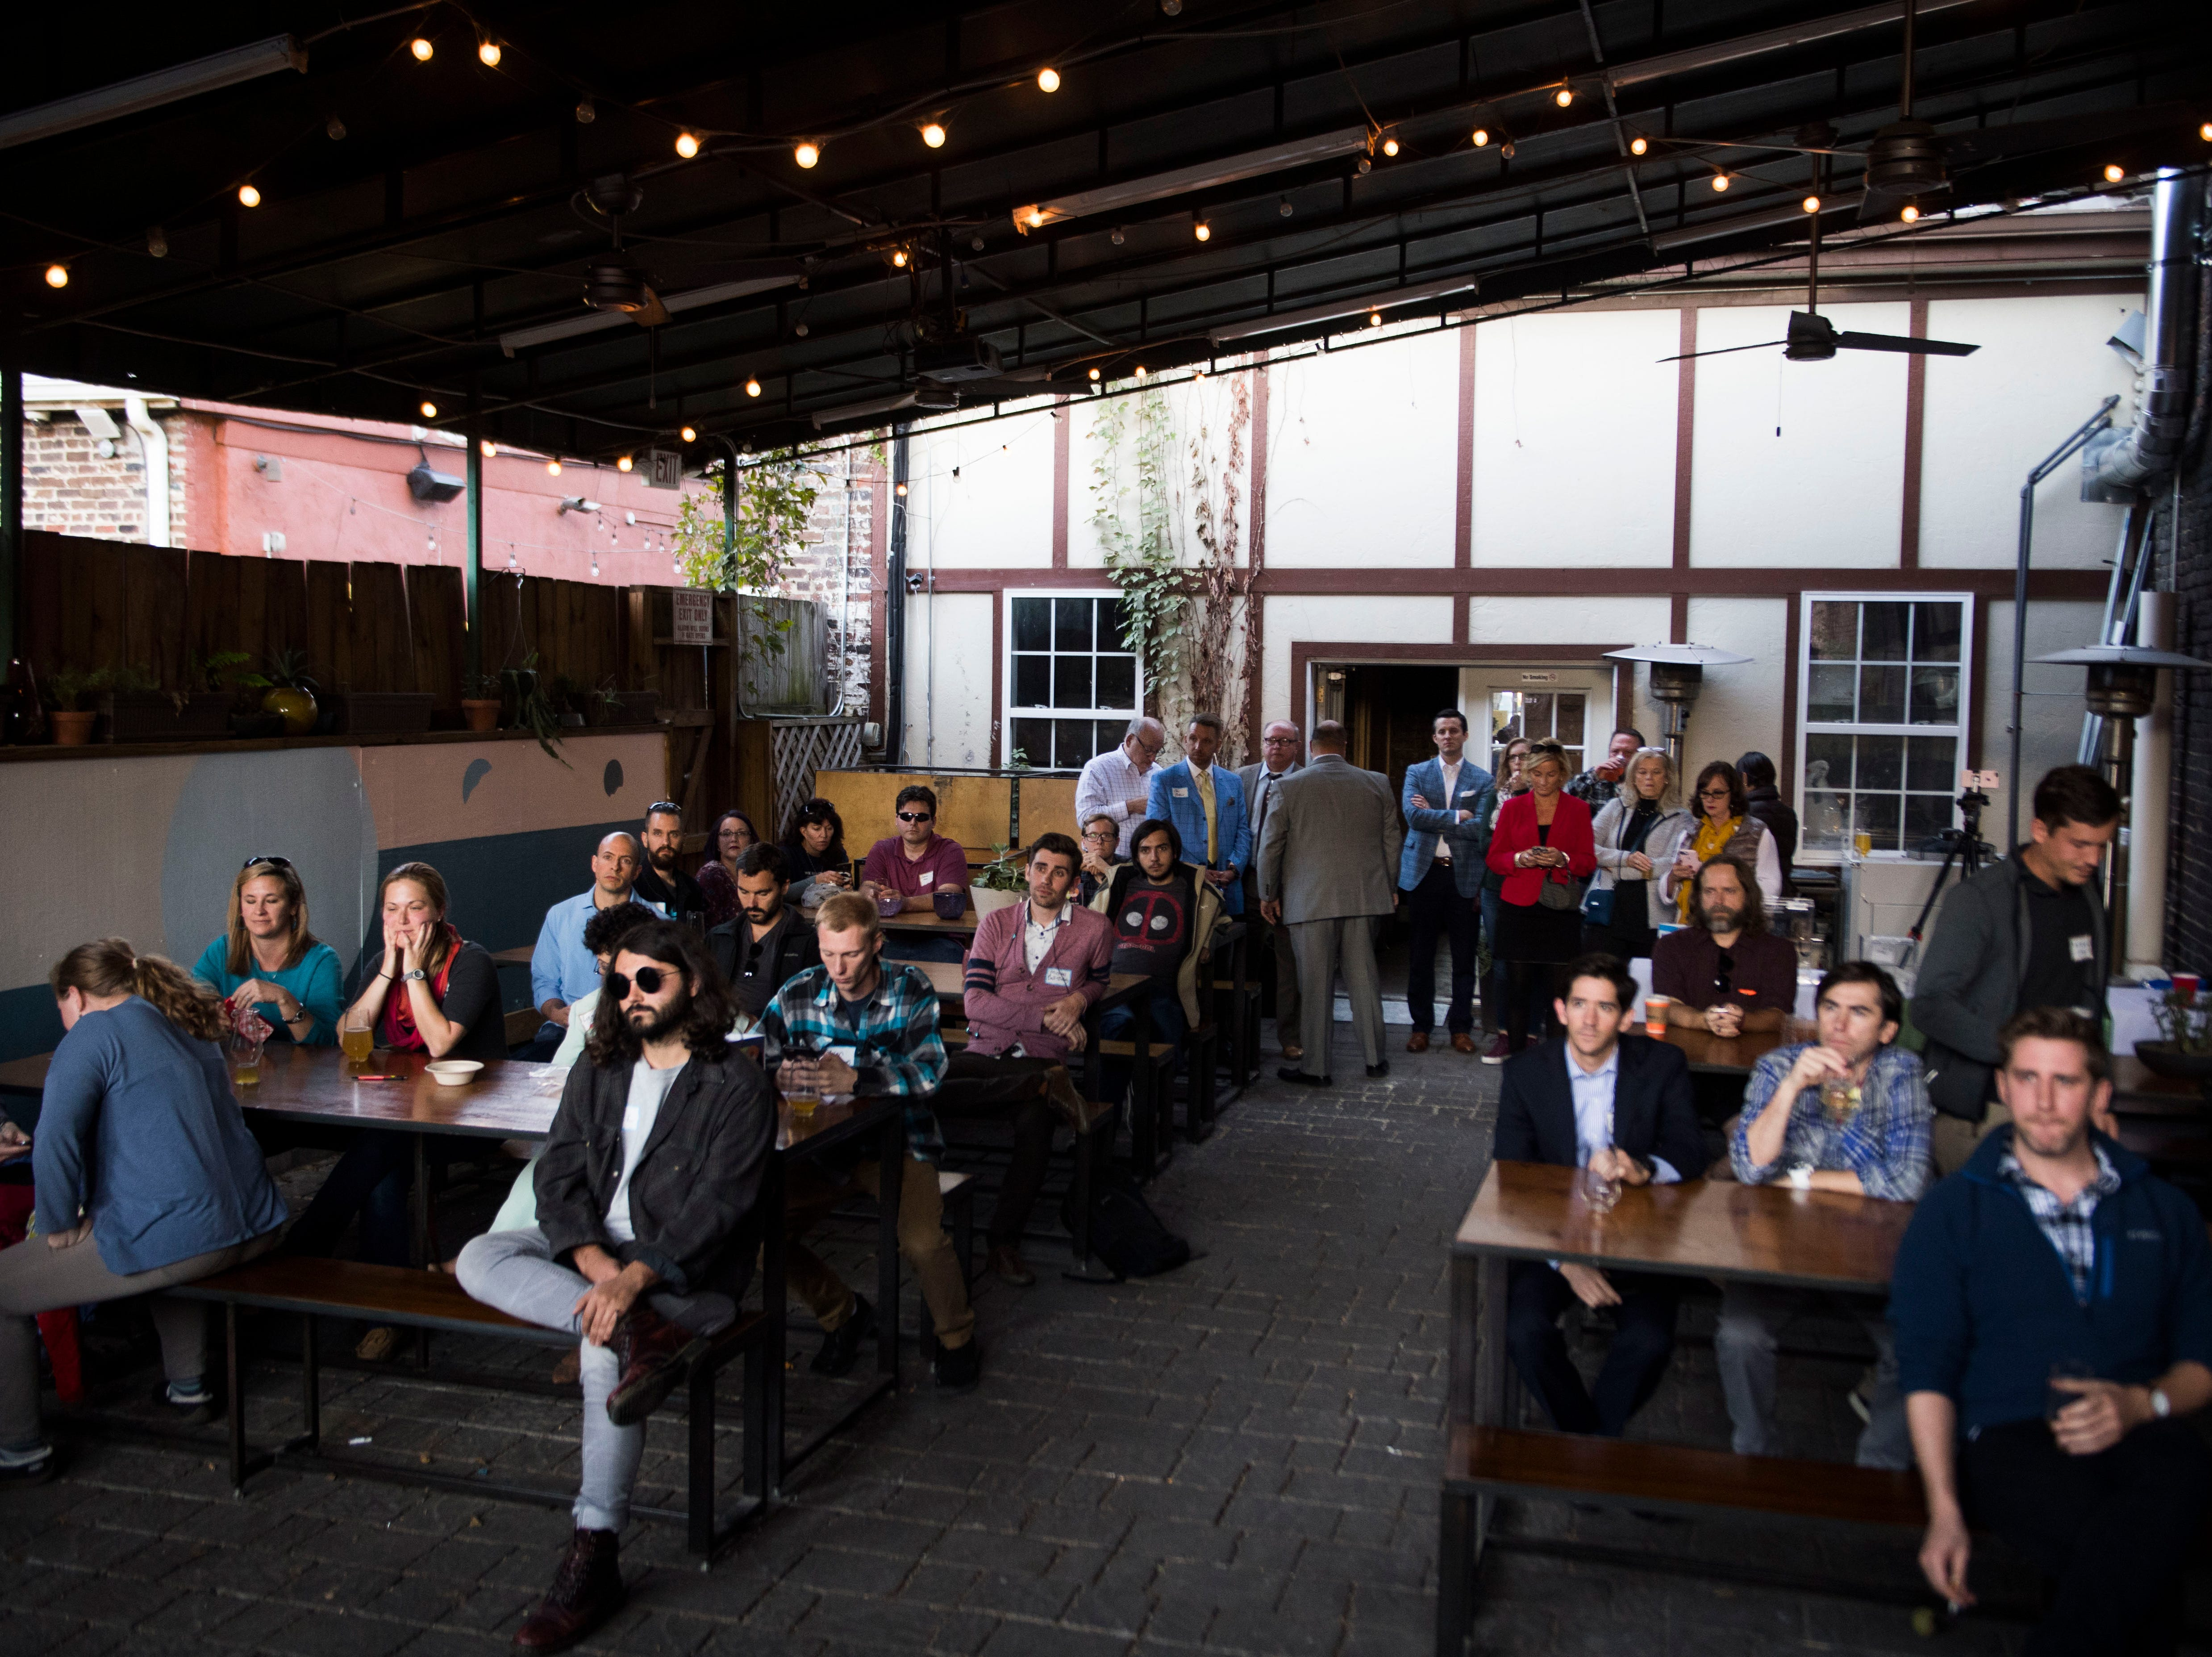 Attendees listen at the News Sentinel's second News & Brews event at Pretentious Beer Co. Thursday, Oct. 18, 2018. Knox County Mayor Glenn Jacobs participated in a Q&A session lead by reporter Tyler Whetstone.